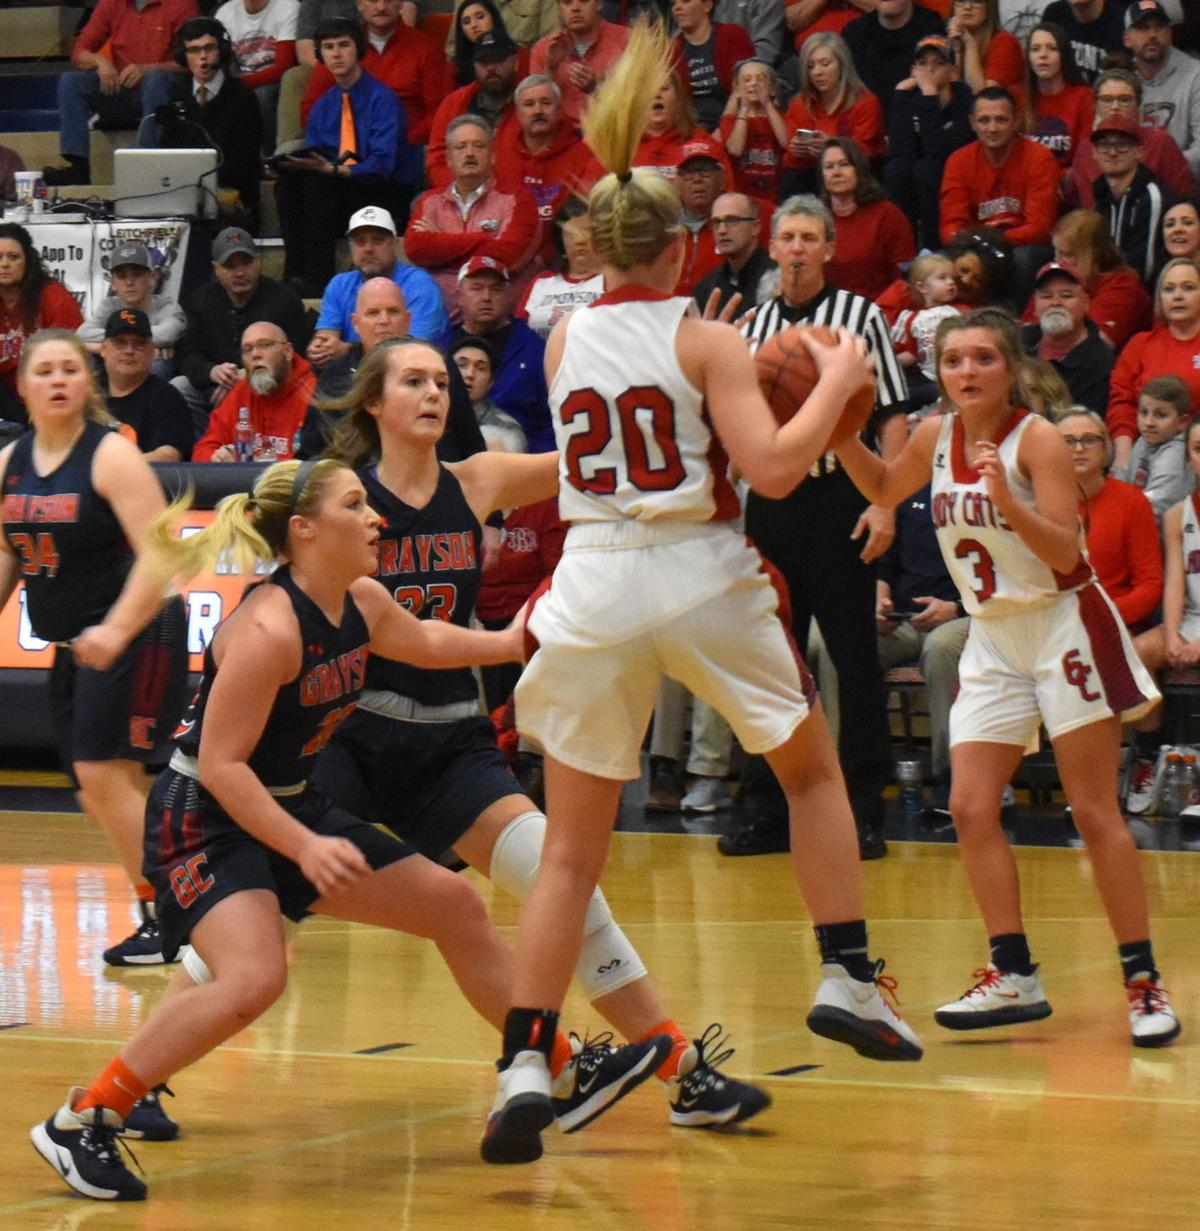 Lady Cougars fall at home in district final 2